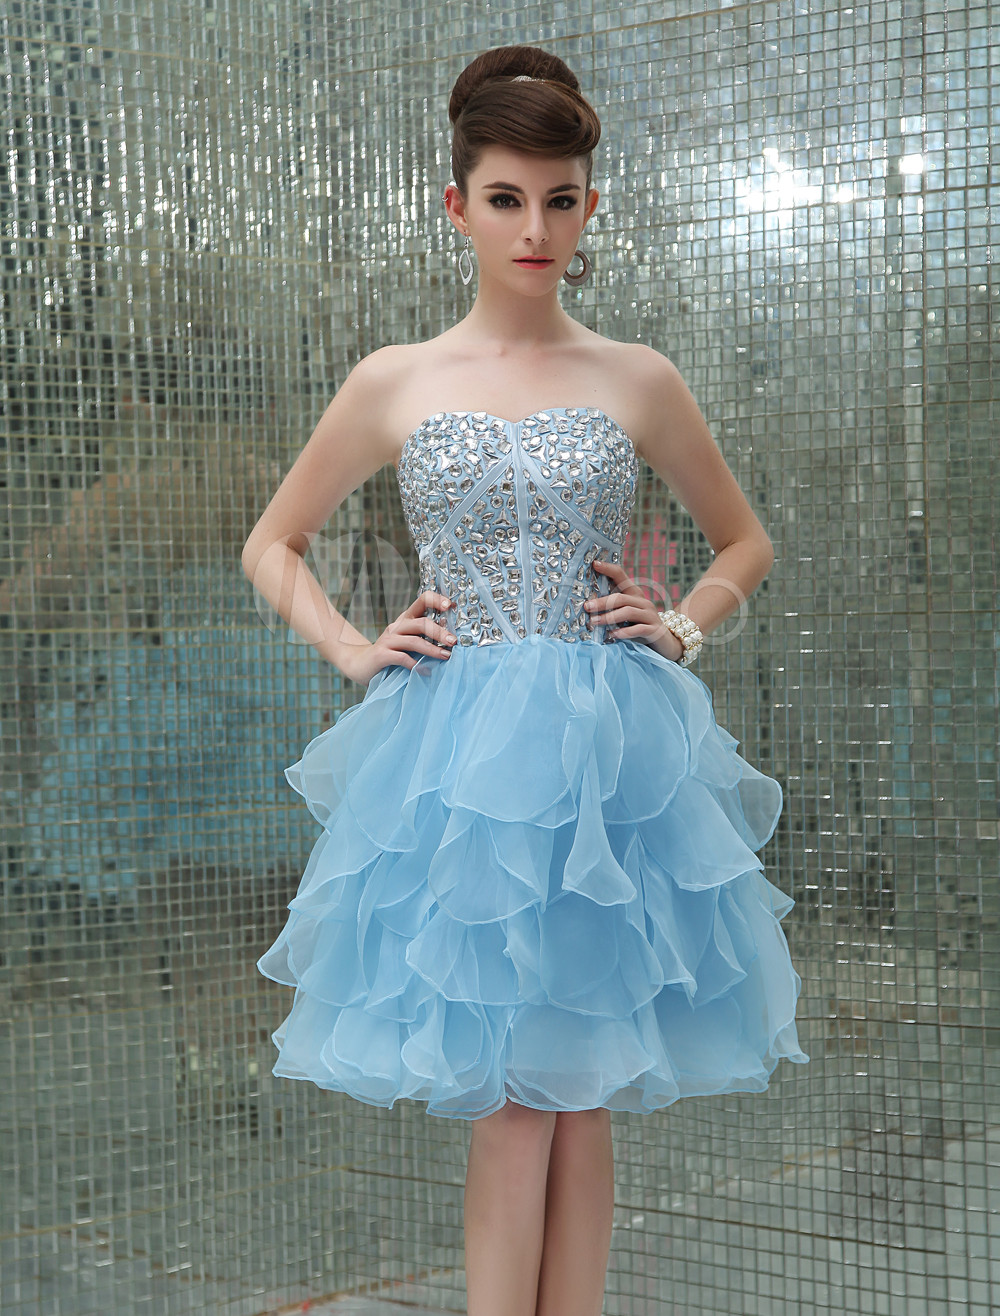 Pastel Blue Cocktail Dress Tiered Organza Beaded Prom Dress Strapless Sweetheart Sleeveless A Line Short Party Dress (Wedding Prom Dresses) photo